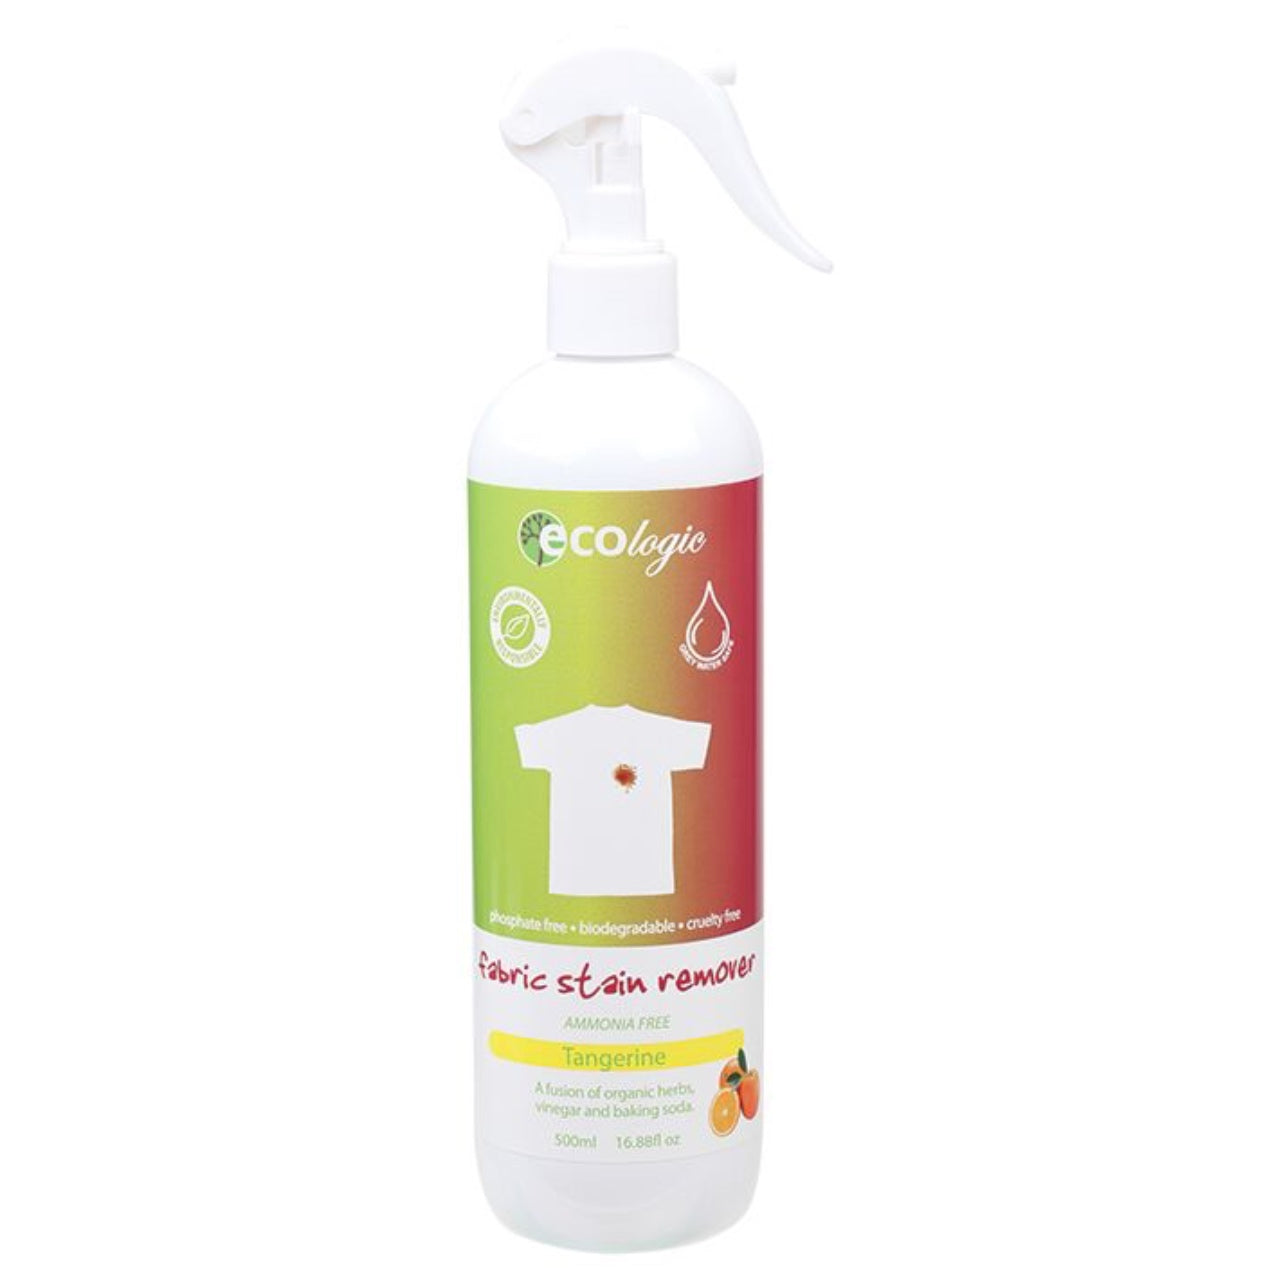 Ecologic Fabric Stain Remover